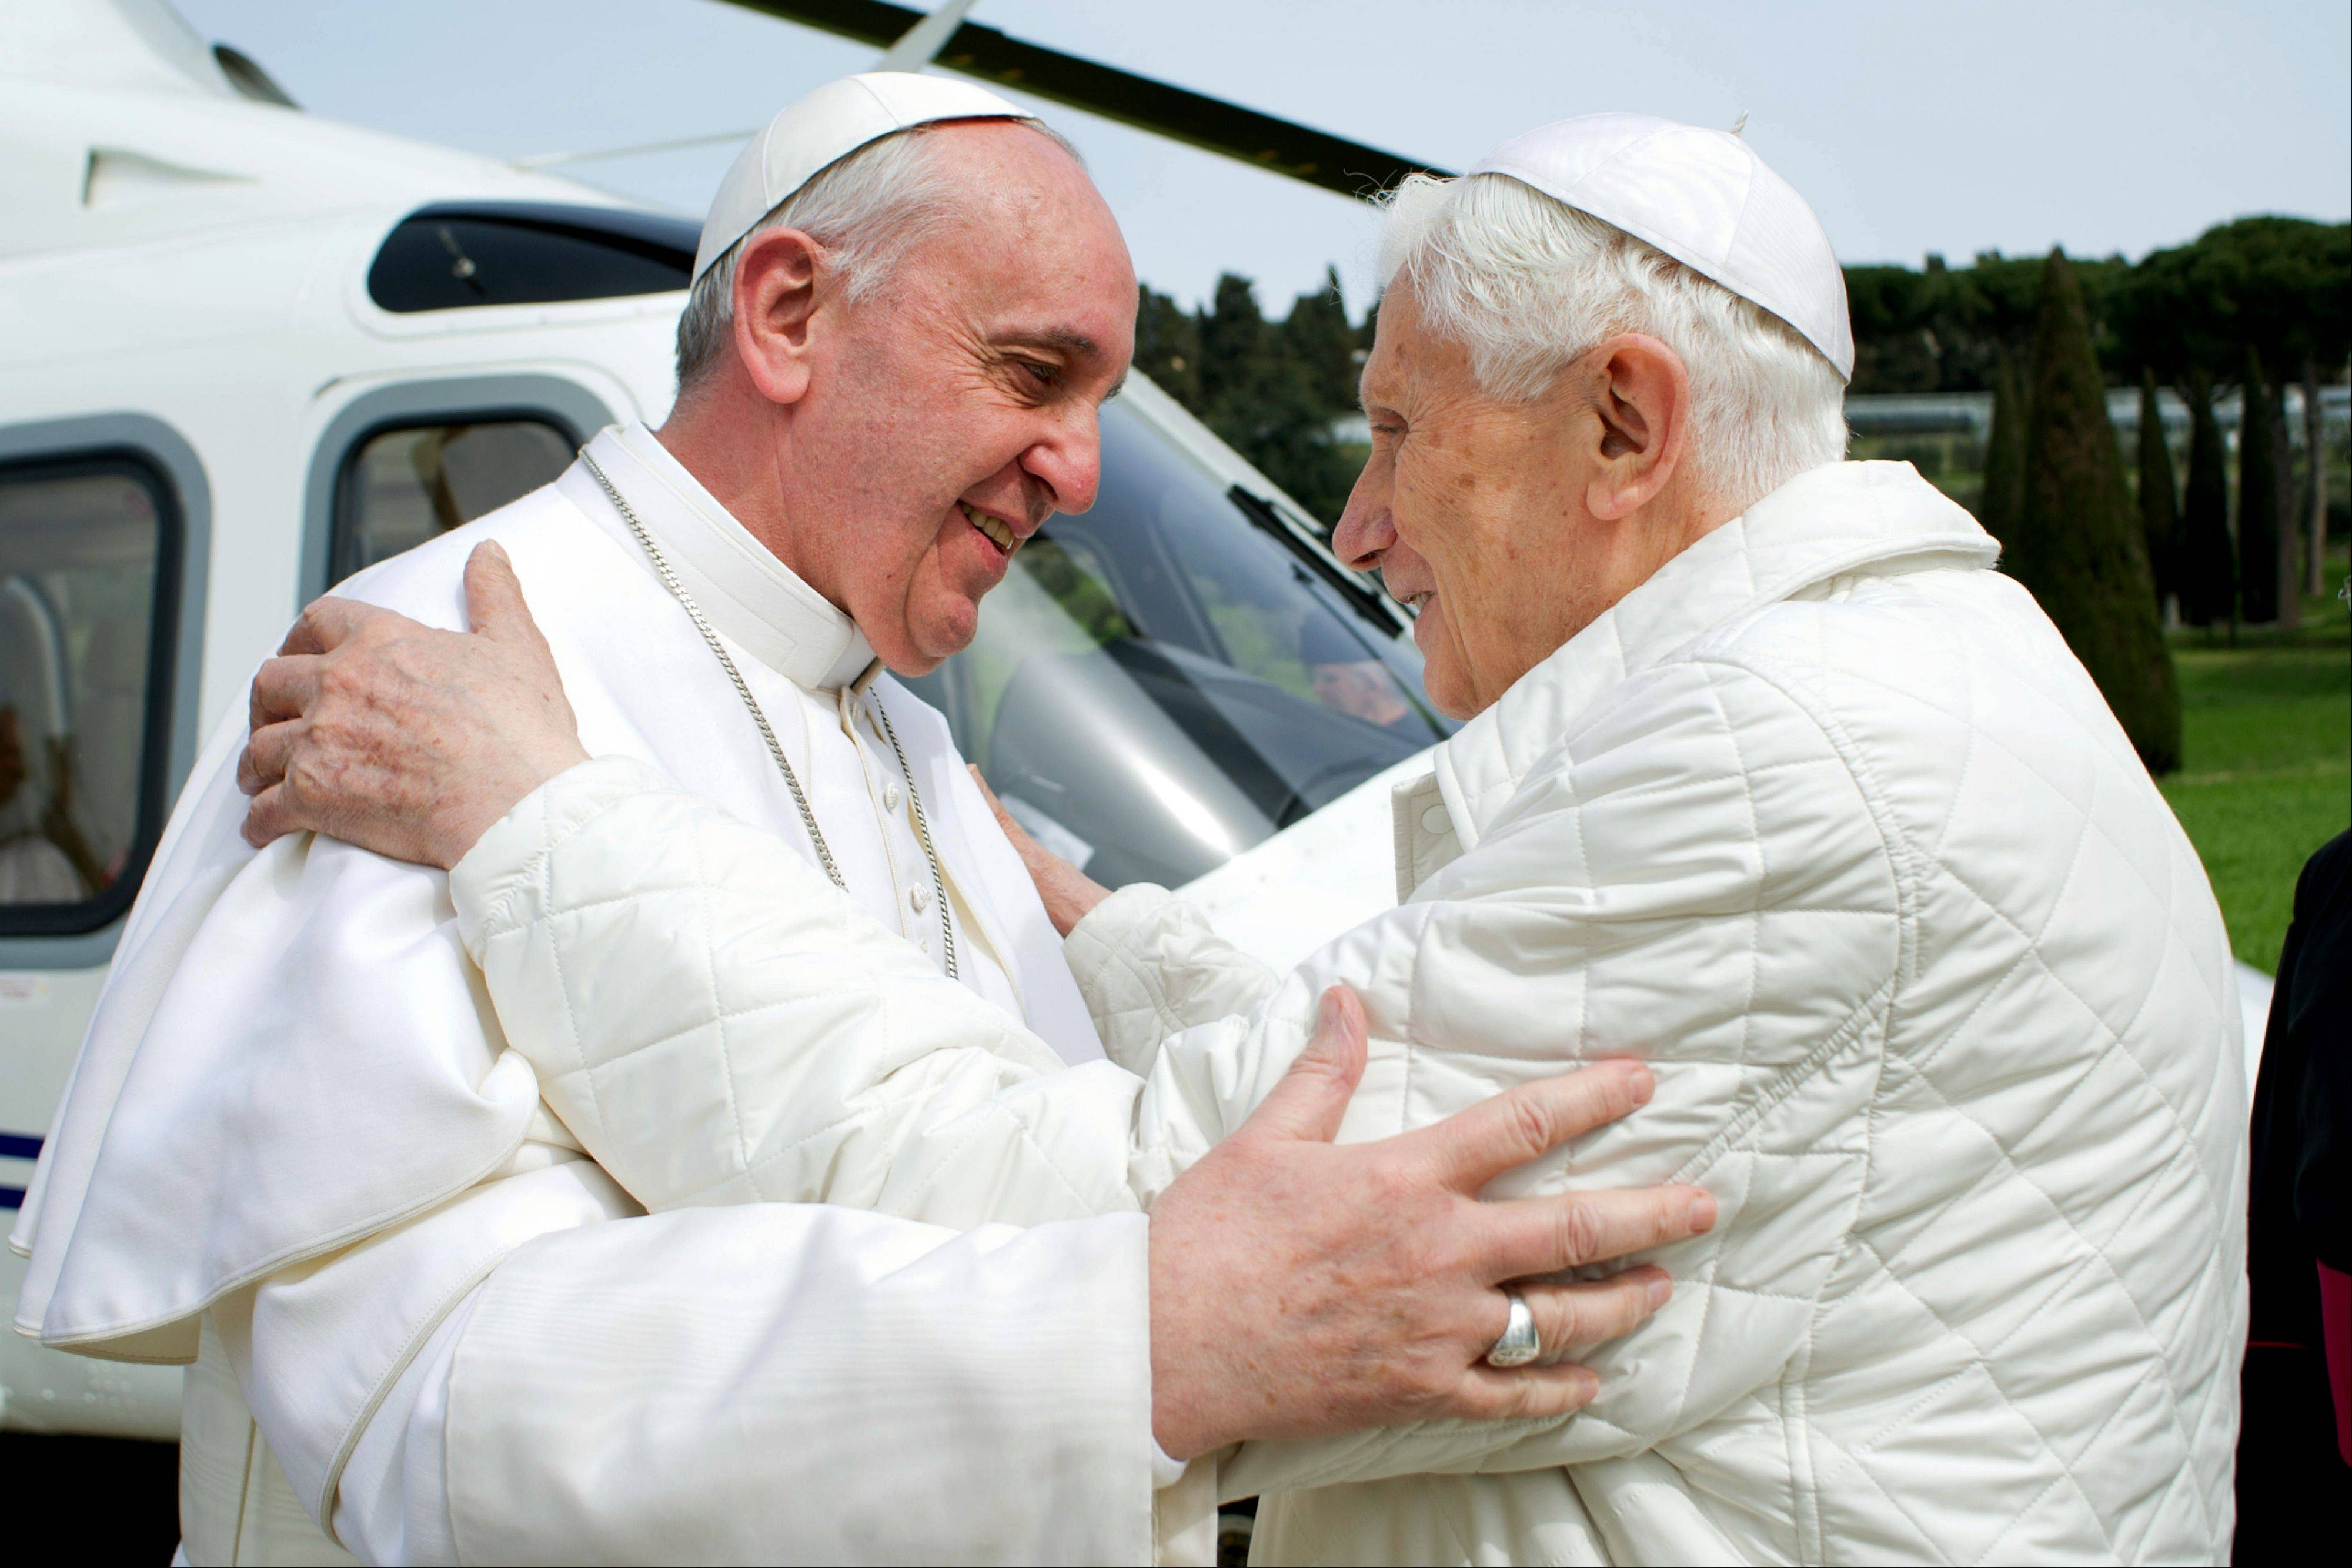 Pope Francis meets Pope emeritus Benedict XVI in Castel Gandolfo Saturday.